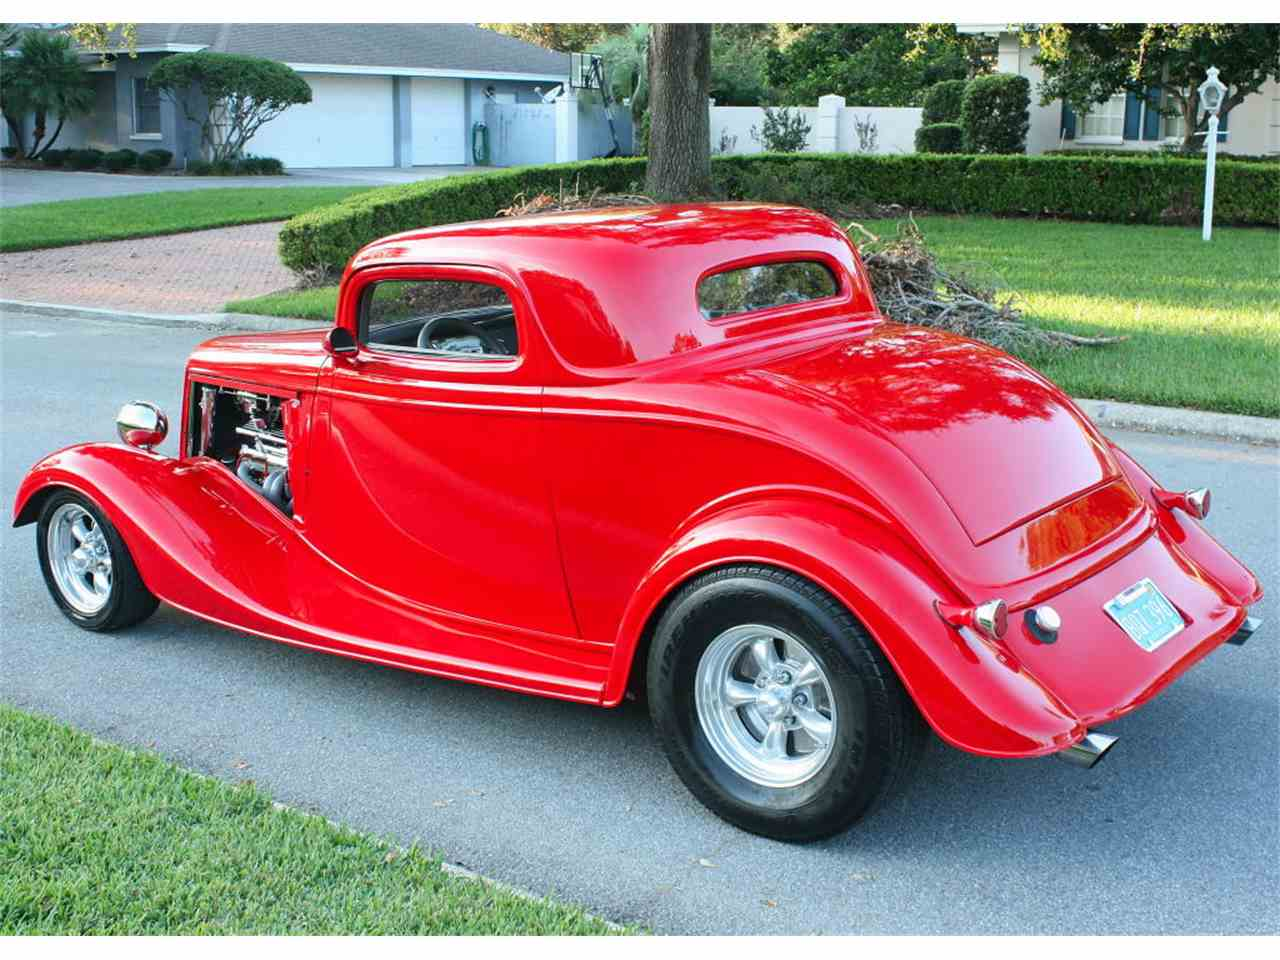 Muscle Cars Under 5k >> 1934 Ford Hot Rod for Sale | ClassicCars.com | CC-1028244